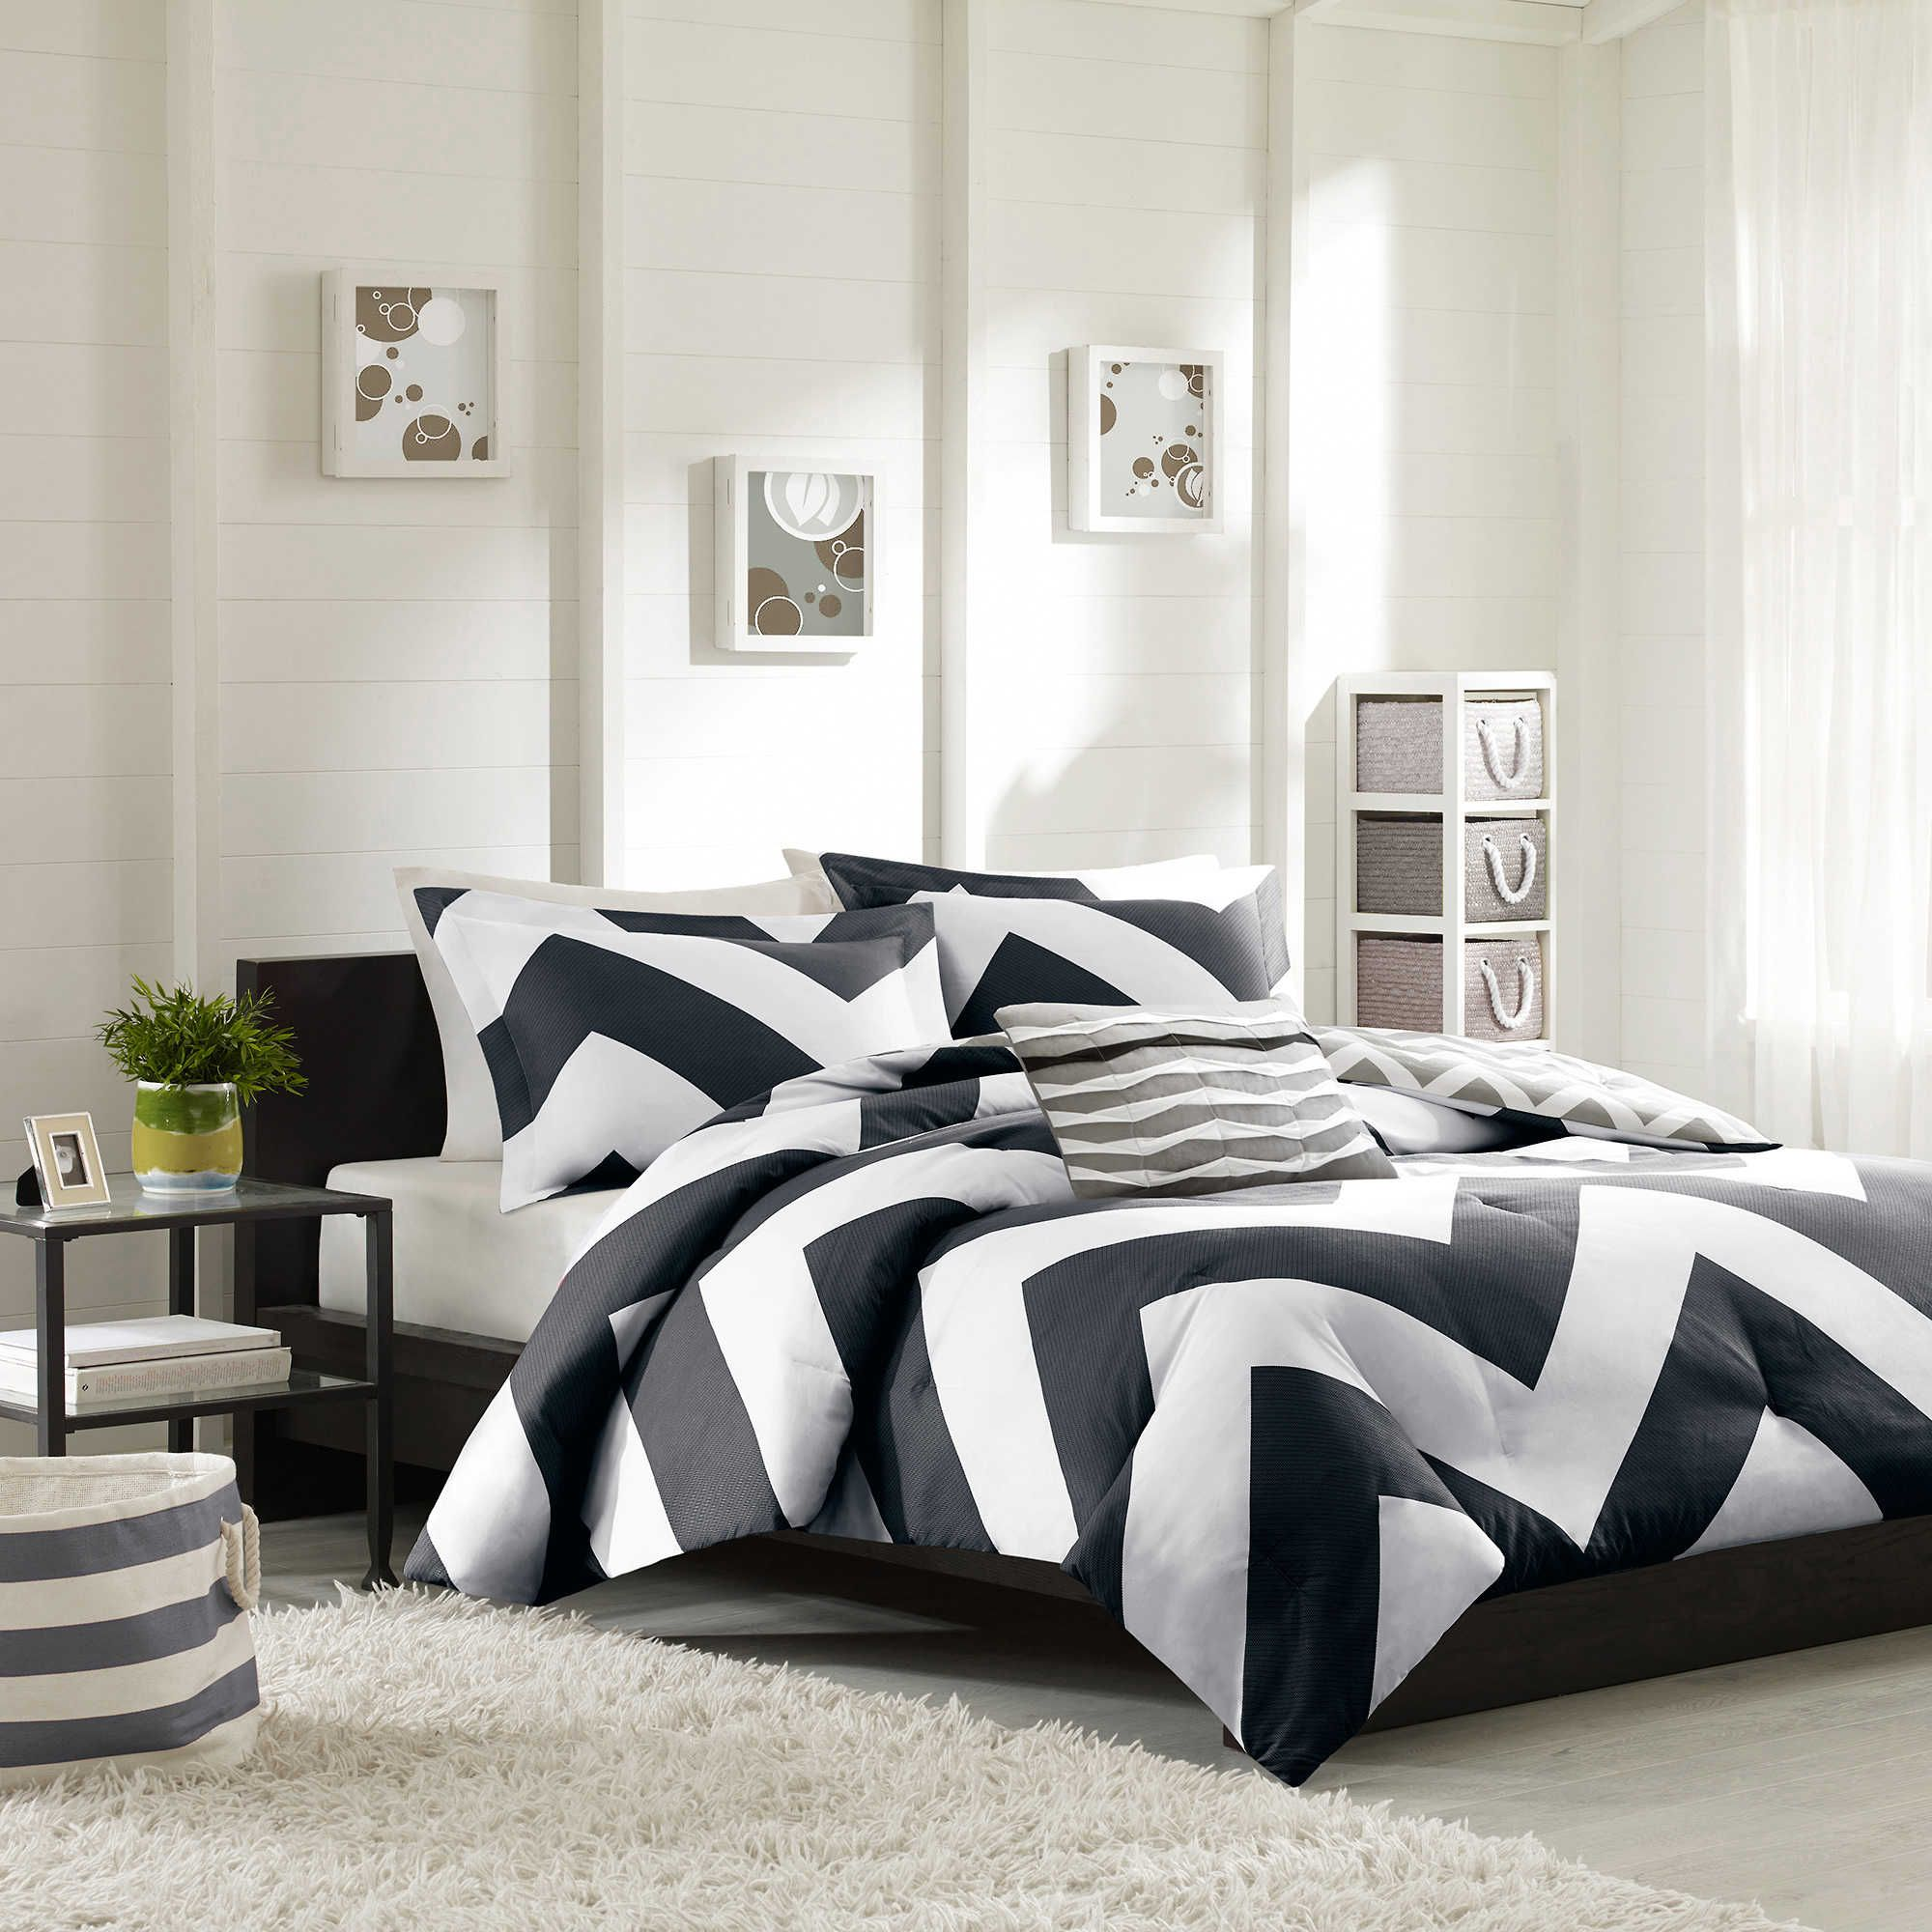 black fitted covers co twin sheet duvet xl asli aetherair